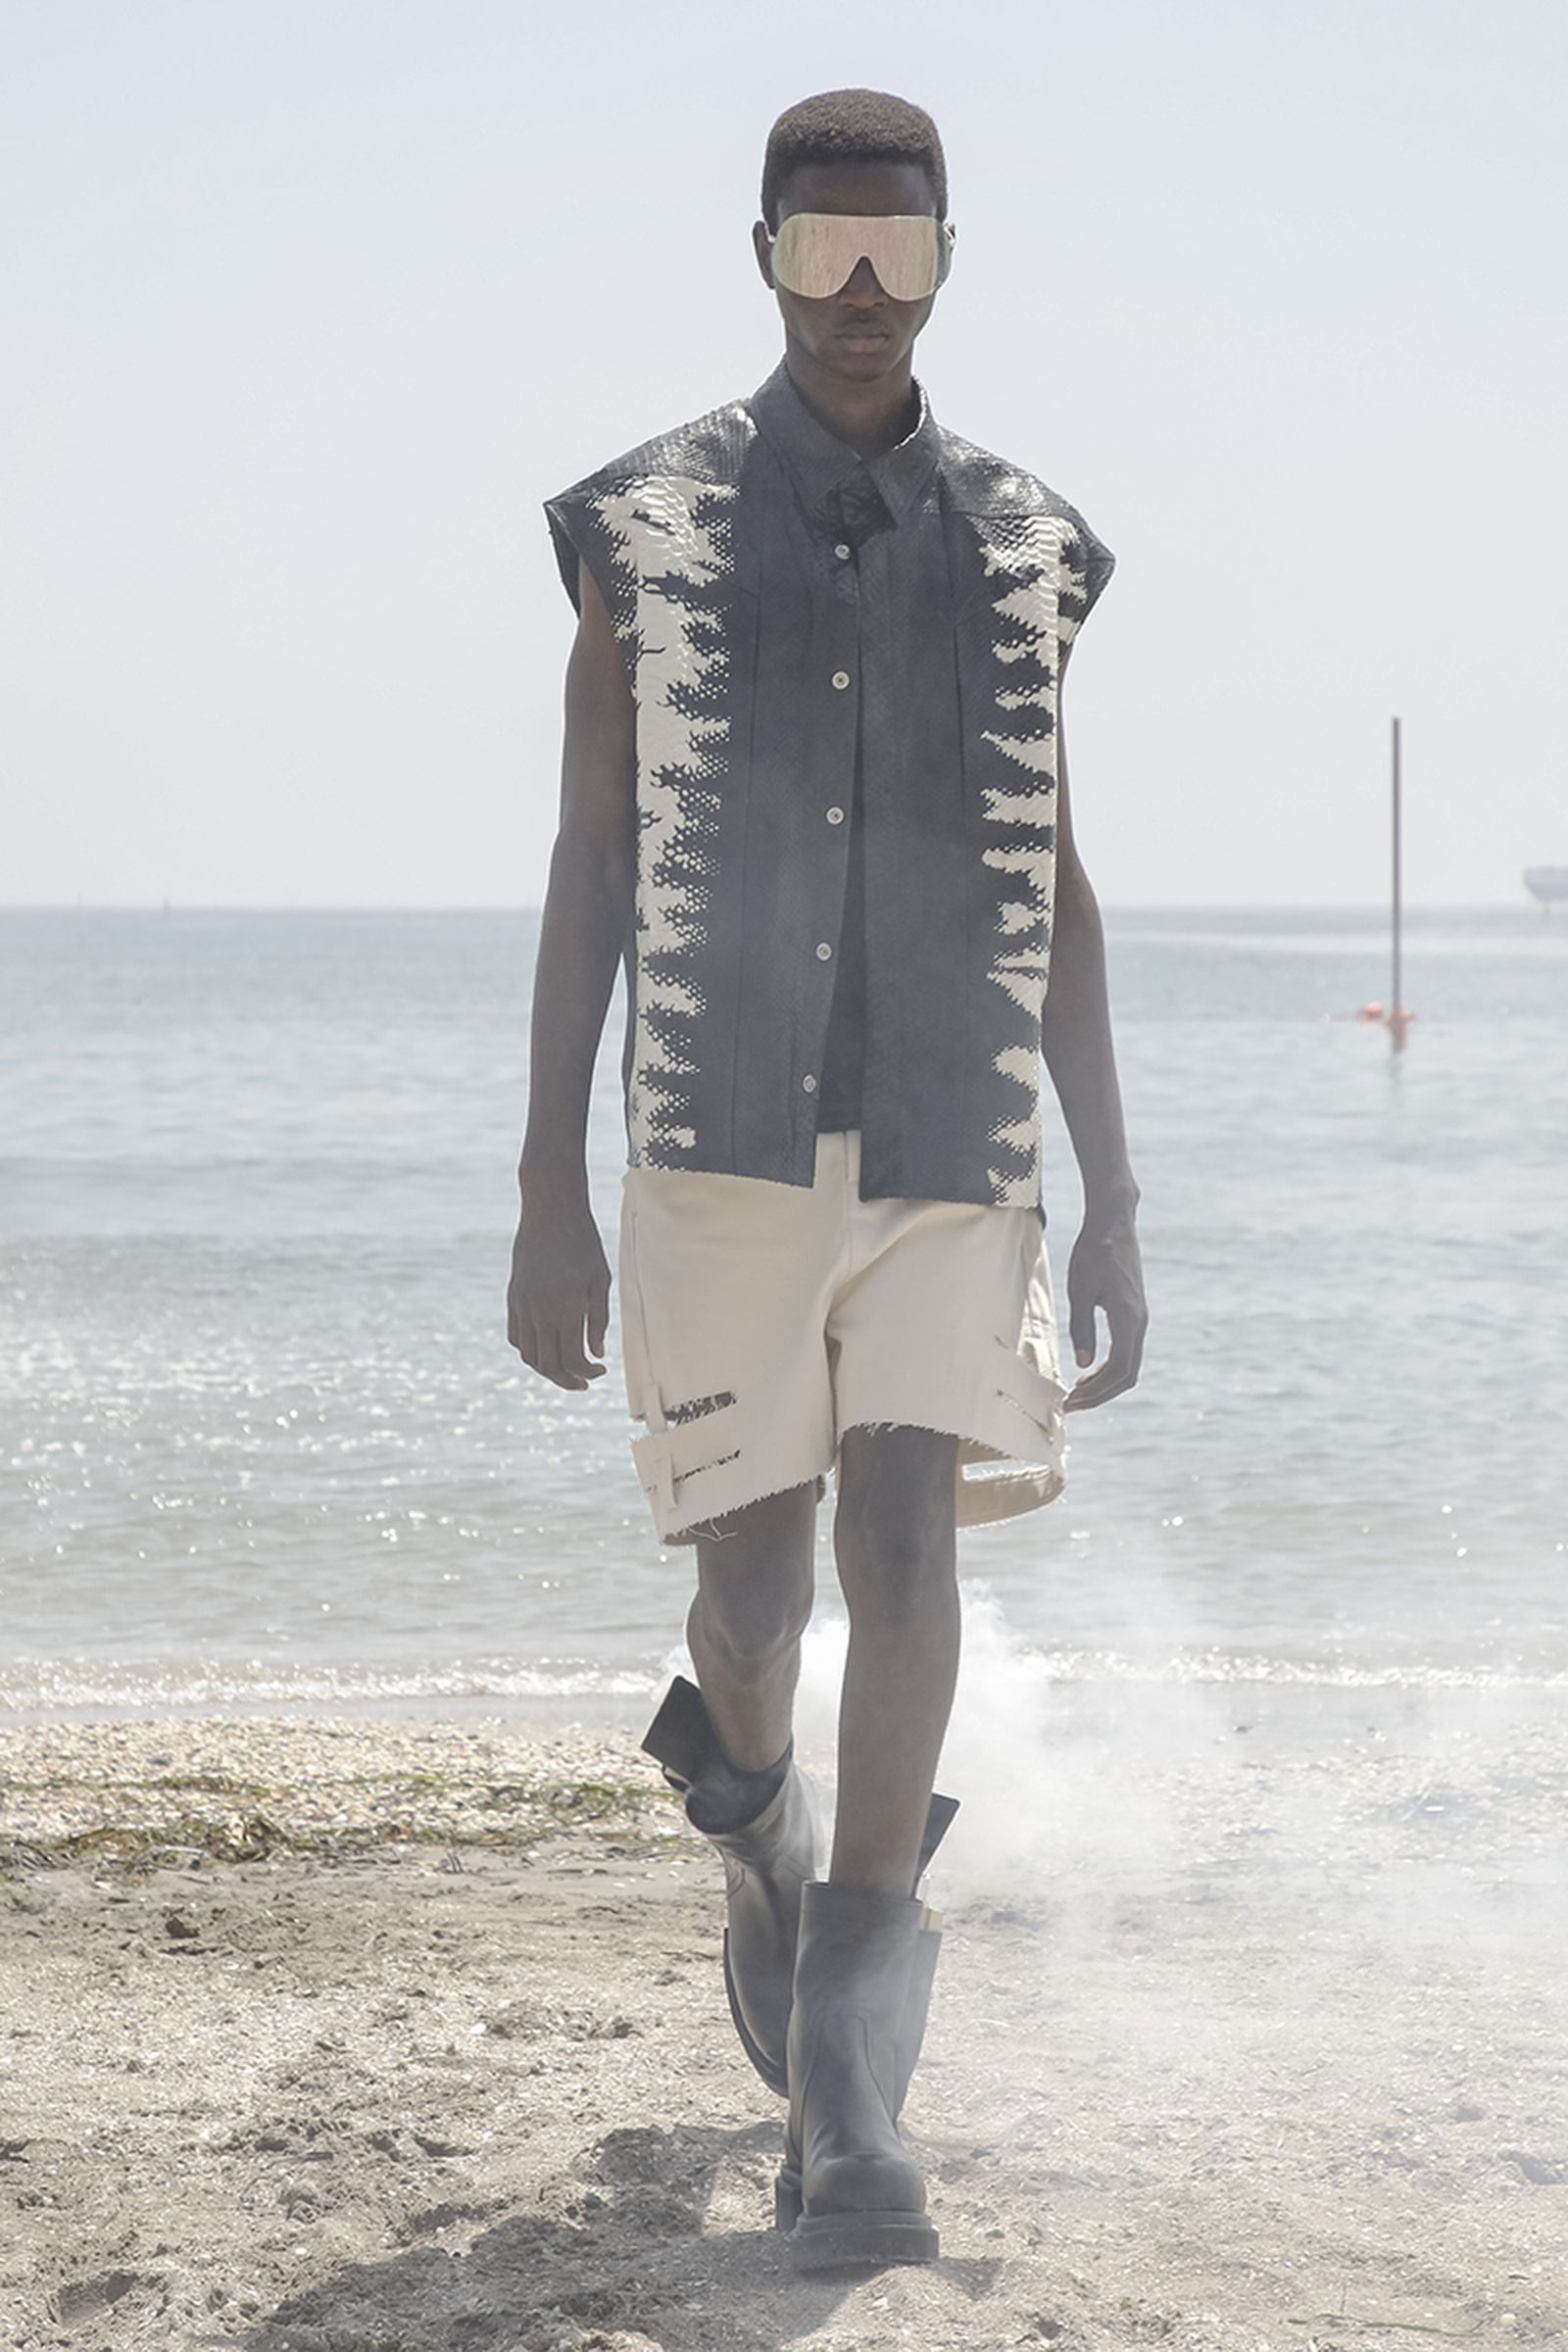 Model on the catwalk at the Rick Owens Fashion show in Venice Lido, Spring Summer 2022, Menswear Fashion Week